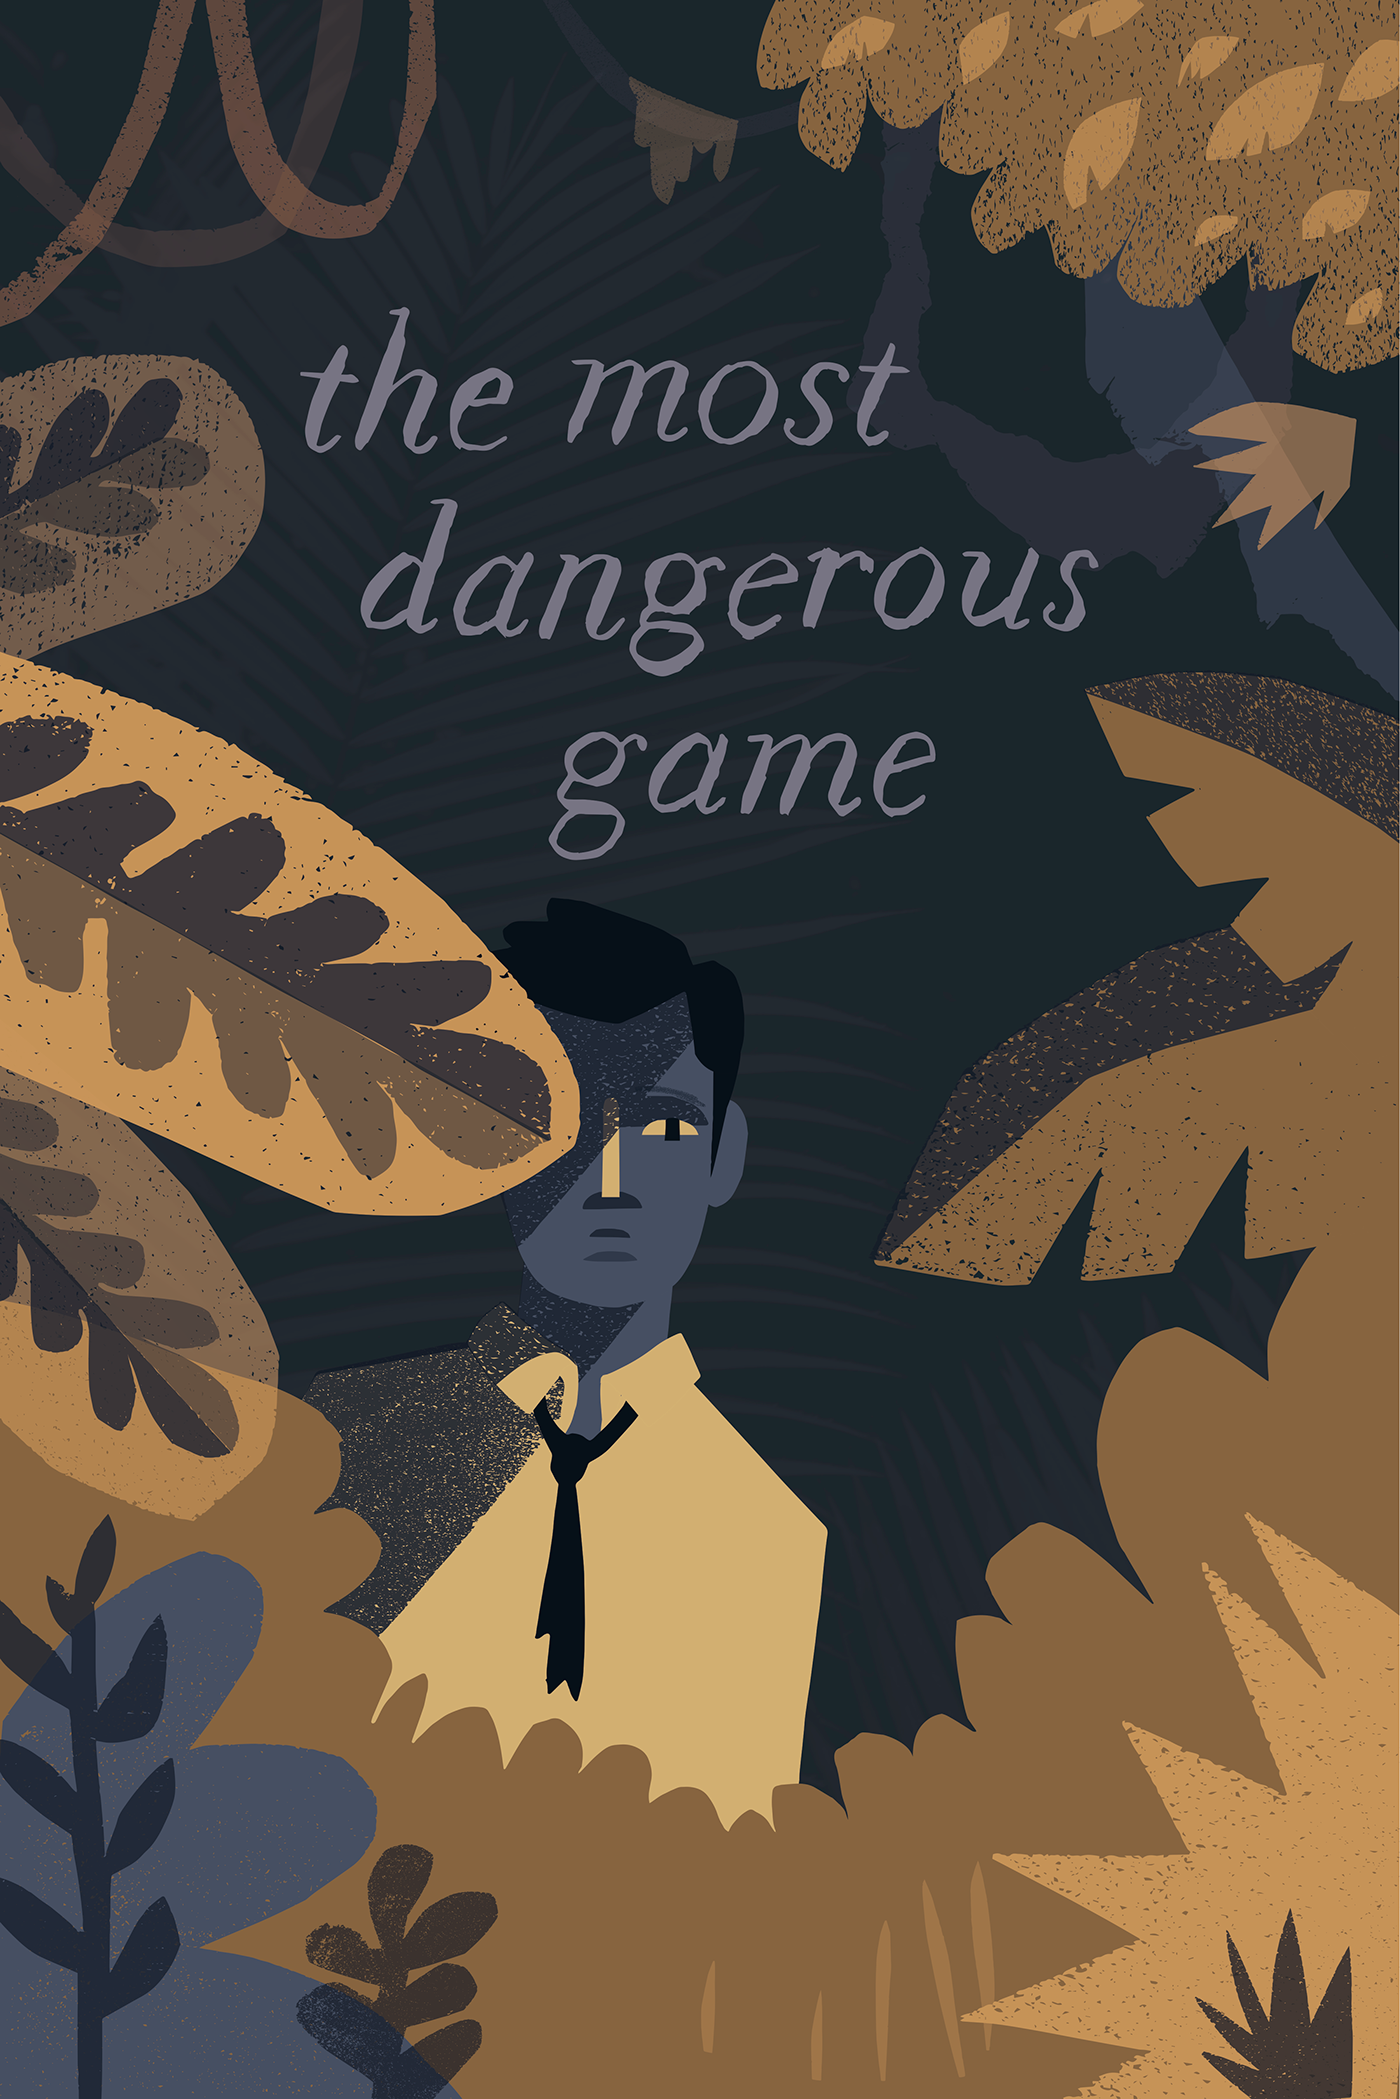 the most dangerous game assignment The most dangerous game by richard connell february 20, 2013 by vocabularycom (ny) after a shipwreck, rainsford thinks he's safe when he washes ashore a mysterious island — but once he meets the eccentric general zaroff, he realizes his problems have just begun.